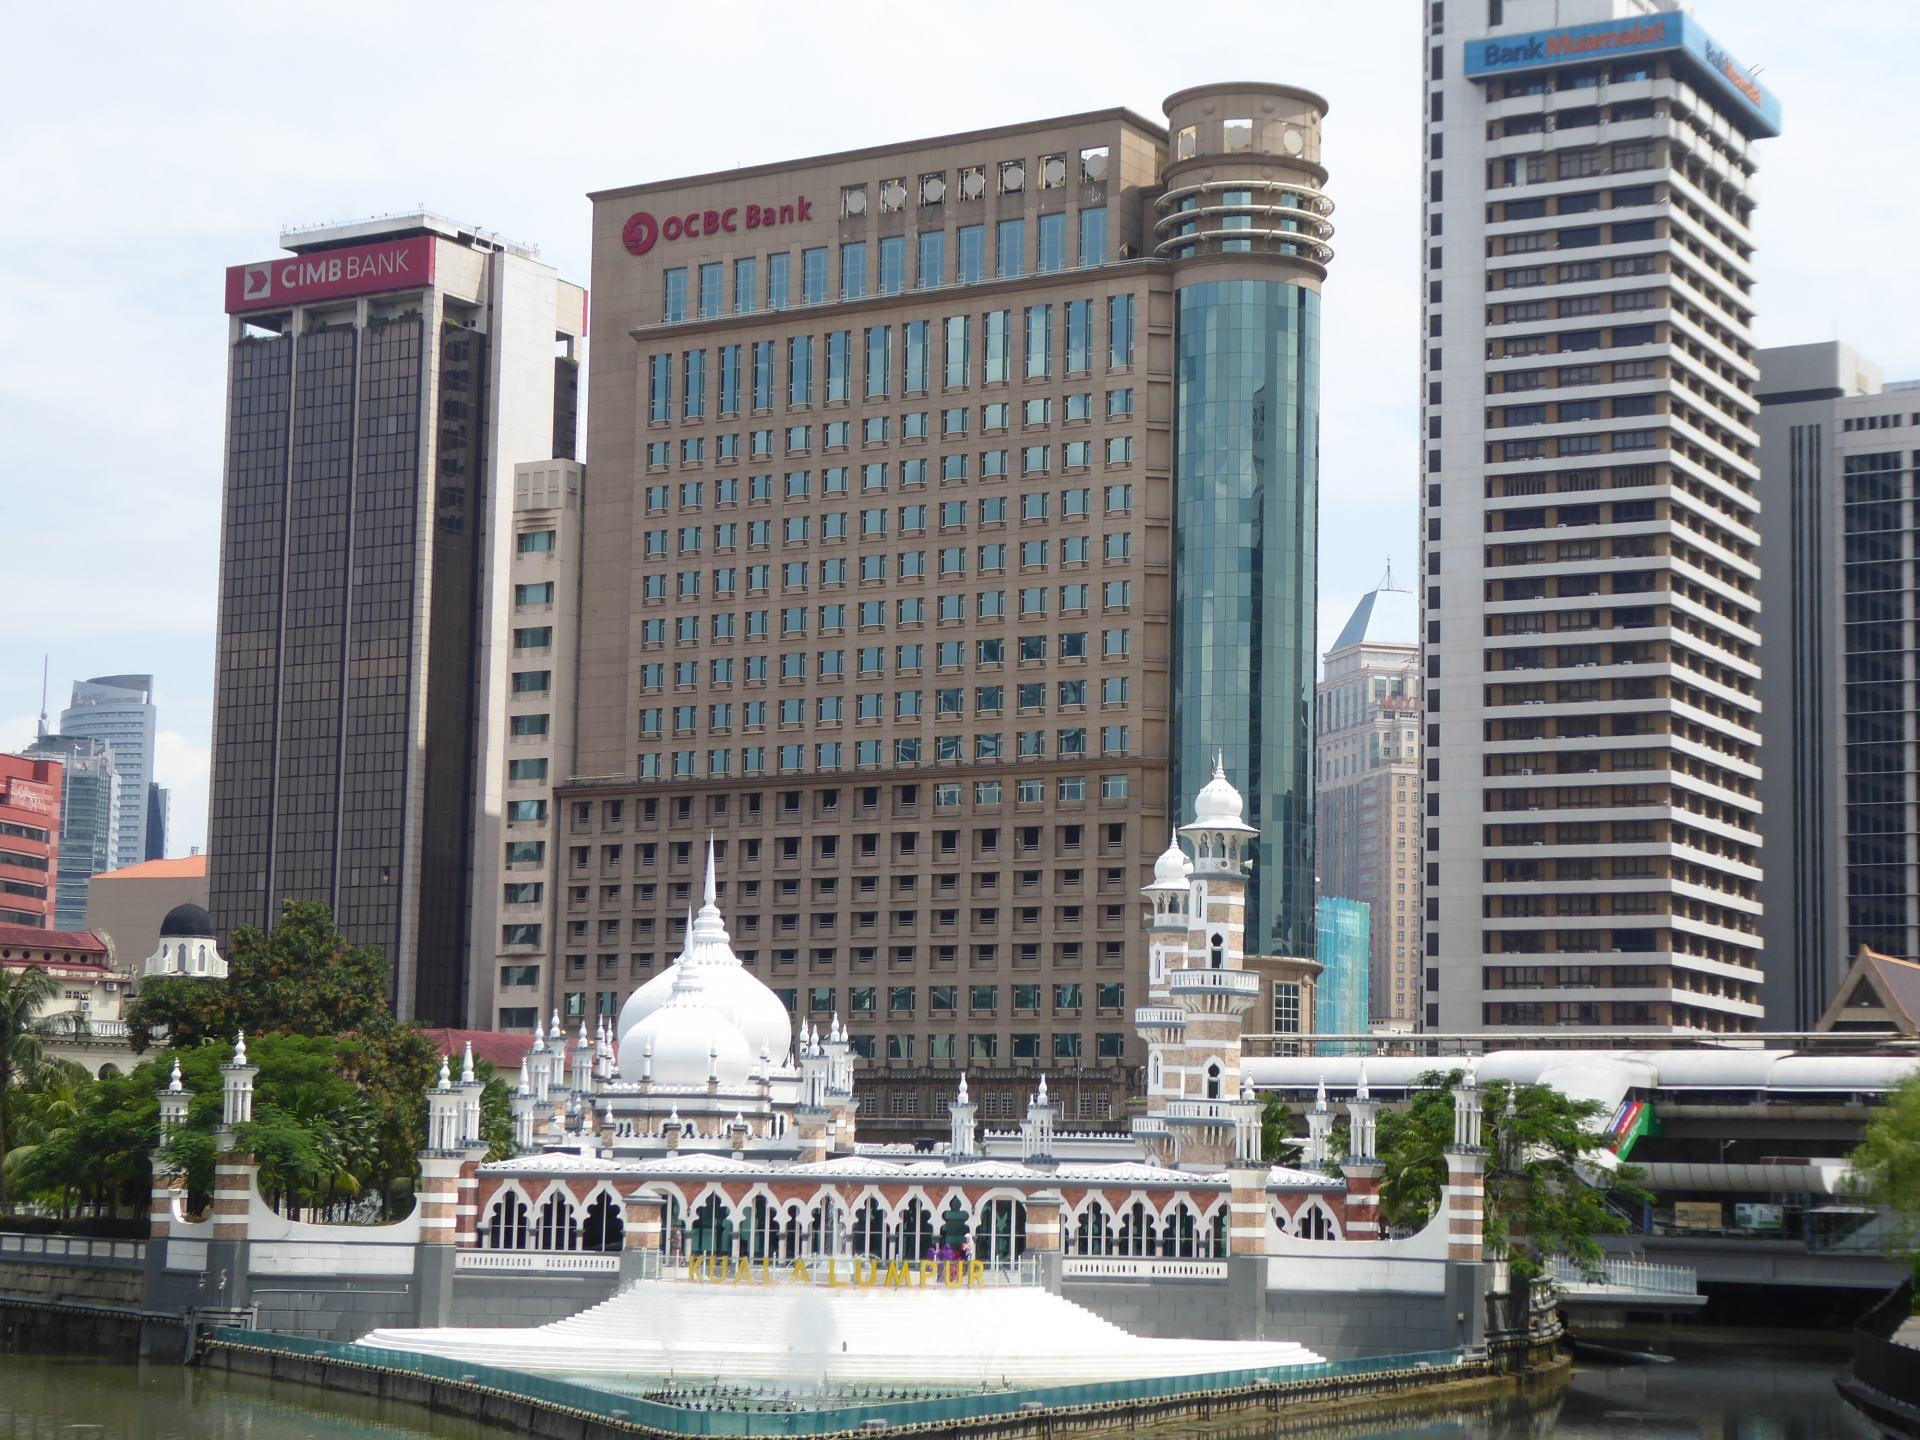 A view of the Masjid Japmek temple in Kuala Lumpur, with sky scrapers behind it.